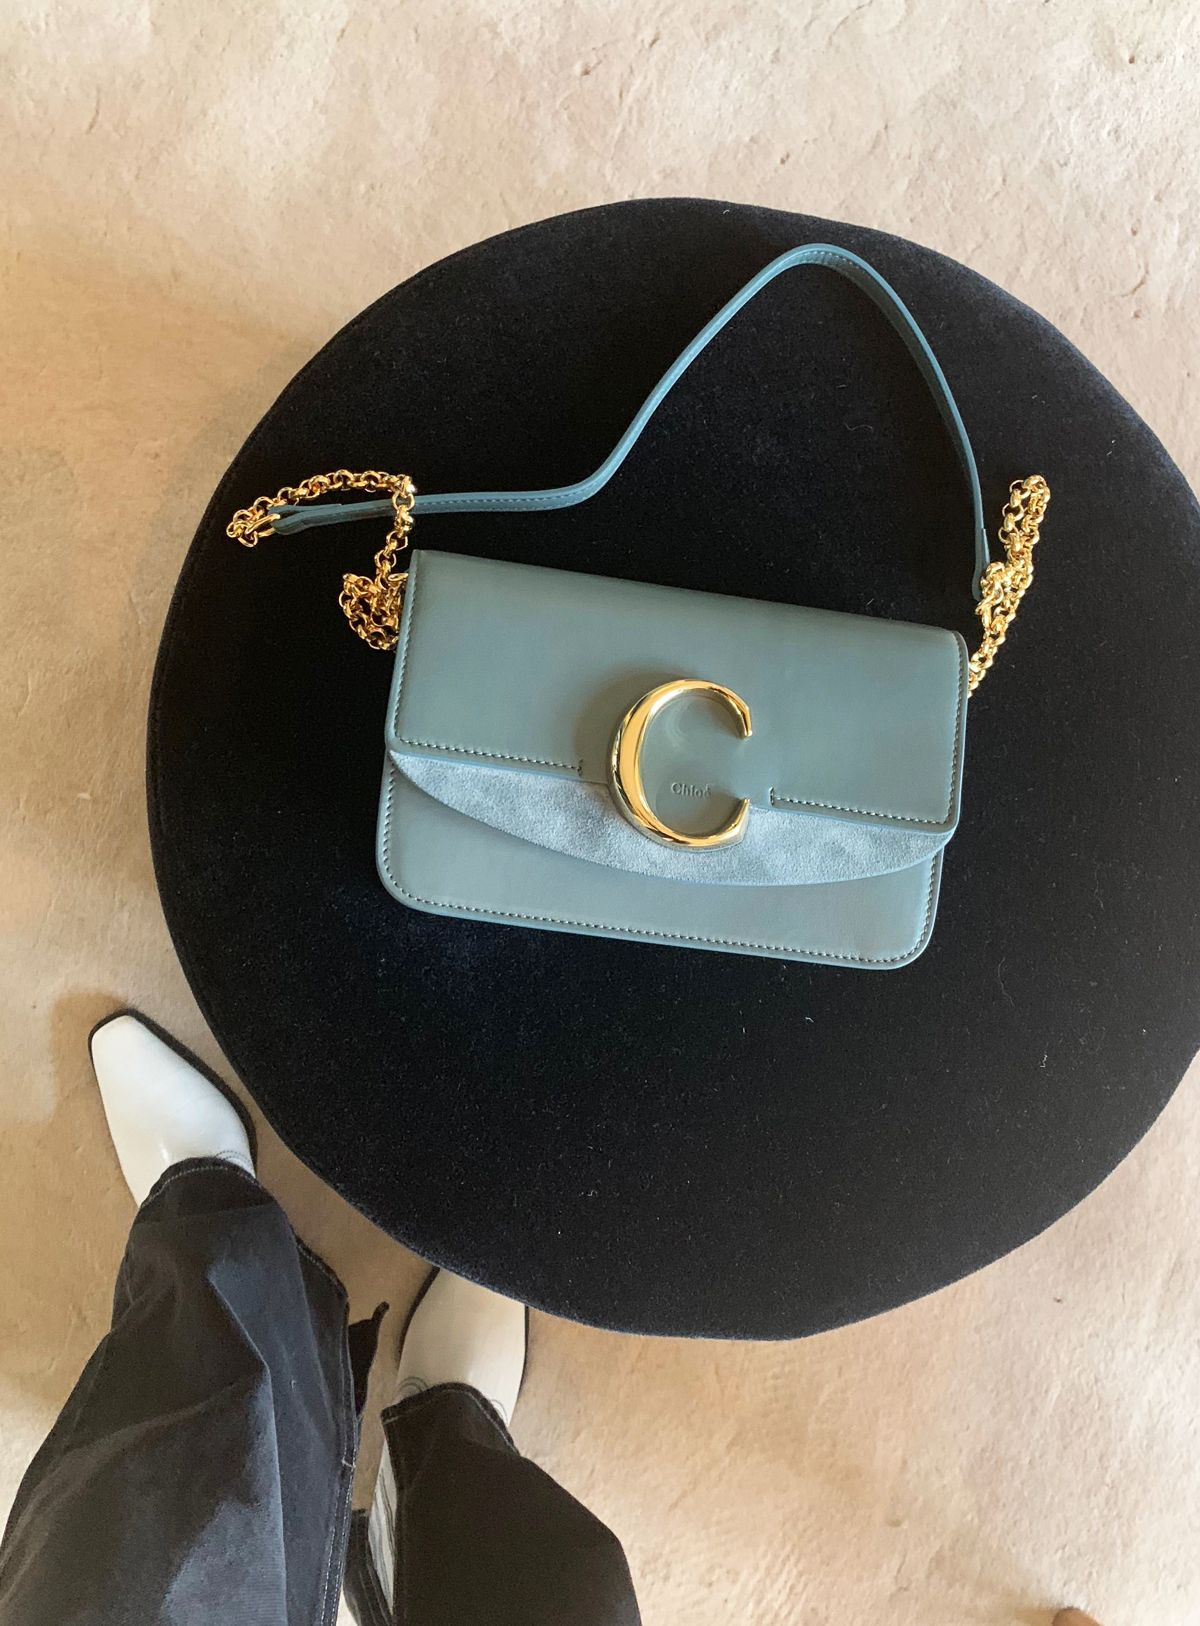 I Know This Sounds OTT, But the New Chloé Bag Is the Most Perfect Bag Ever